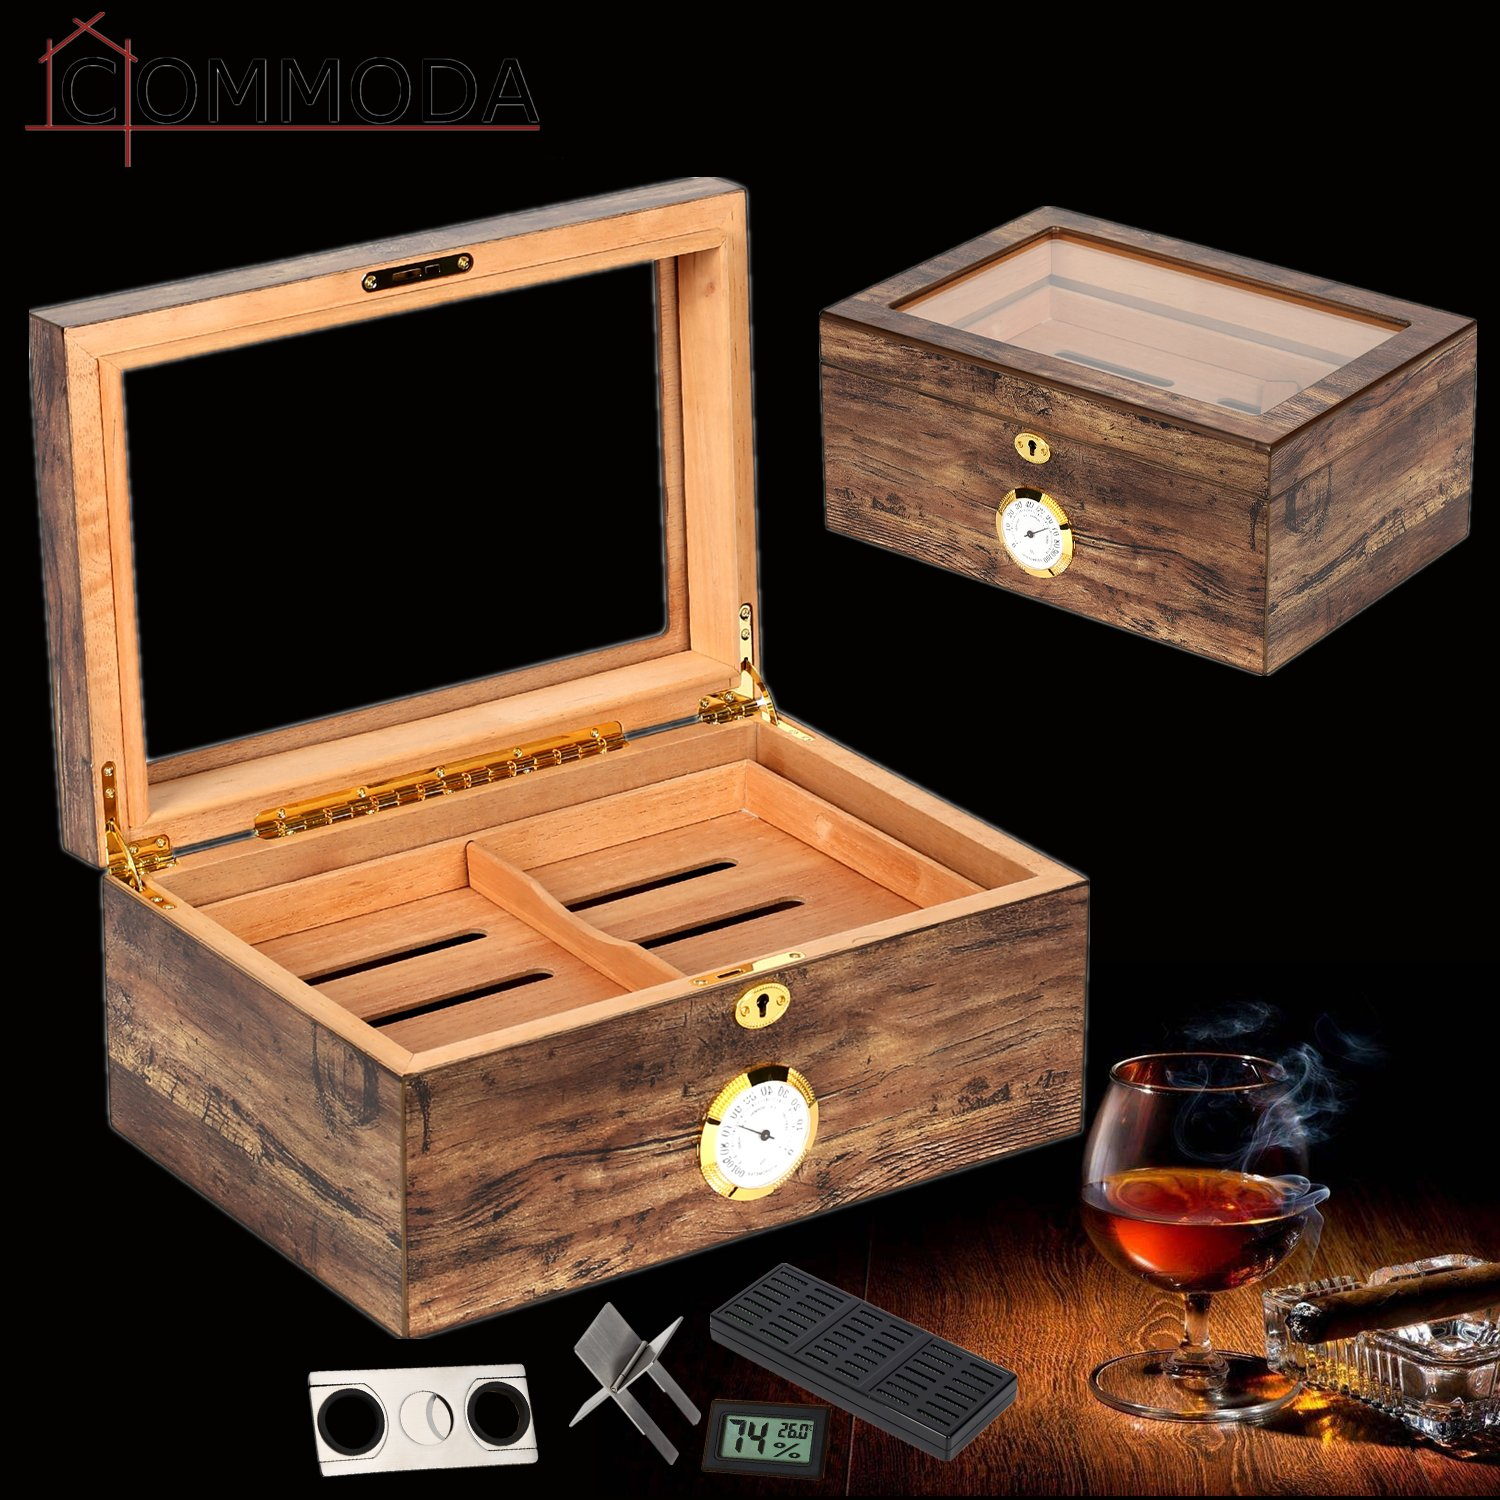 COMMODA Desktop Cigar Humidor Tempered Glasstop with Front Mounted Hygrometer and Humidifier, Cedar Lined Storage Box Spanish Cedar Tray with Divider, Holds 100 Cigars Cigar Free Cutter and Rack by COMMODA (Image #3)